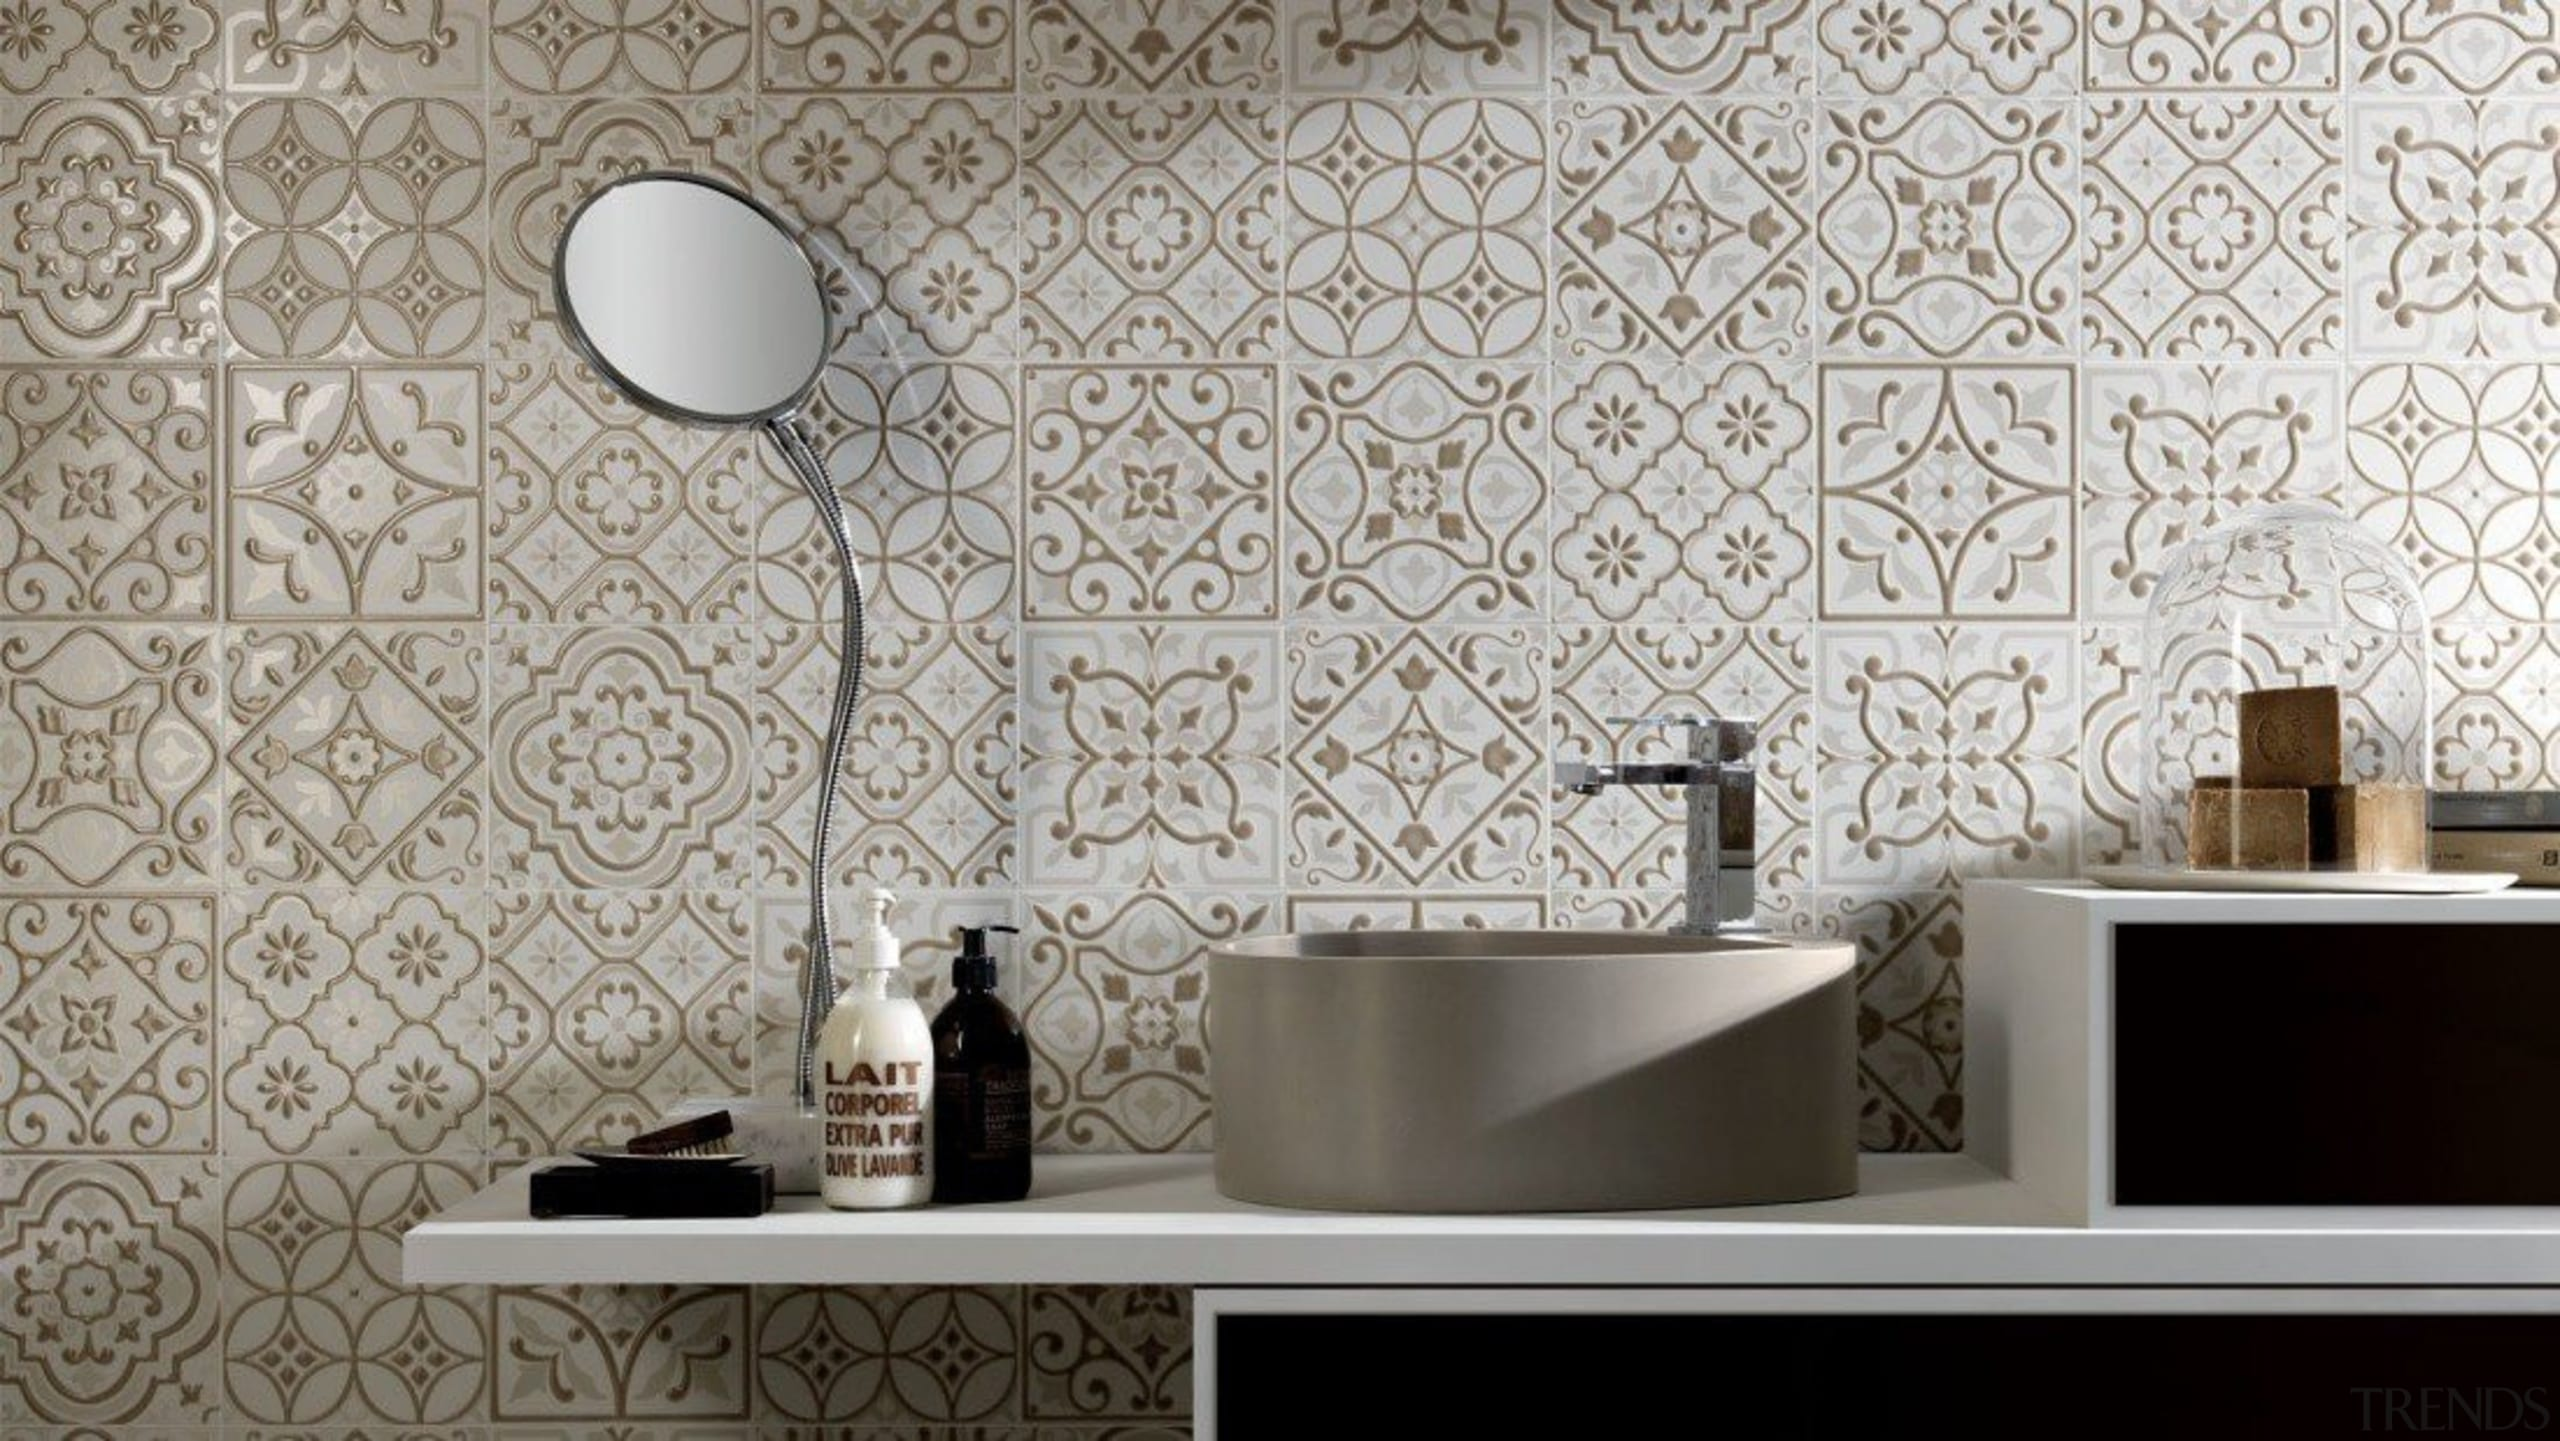 City Glamour - City Glamour - bathroom | bathroom, ceramic, floor, flooring, interior design, product design, tap, tile, wall, wallpaper, gray